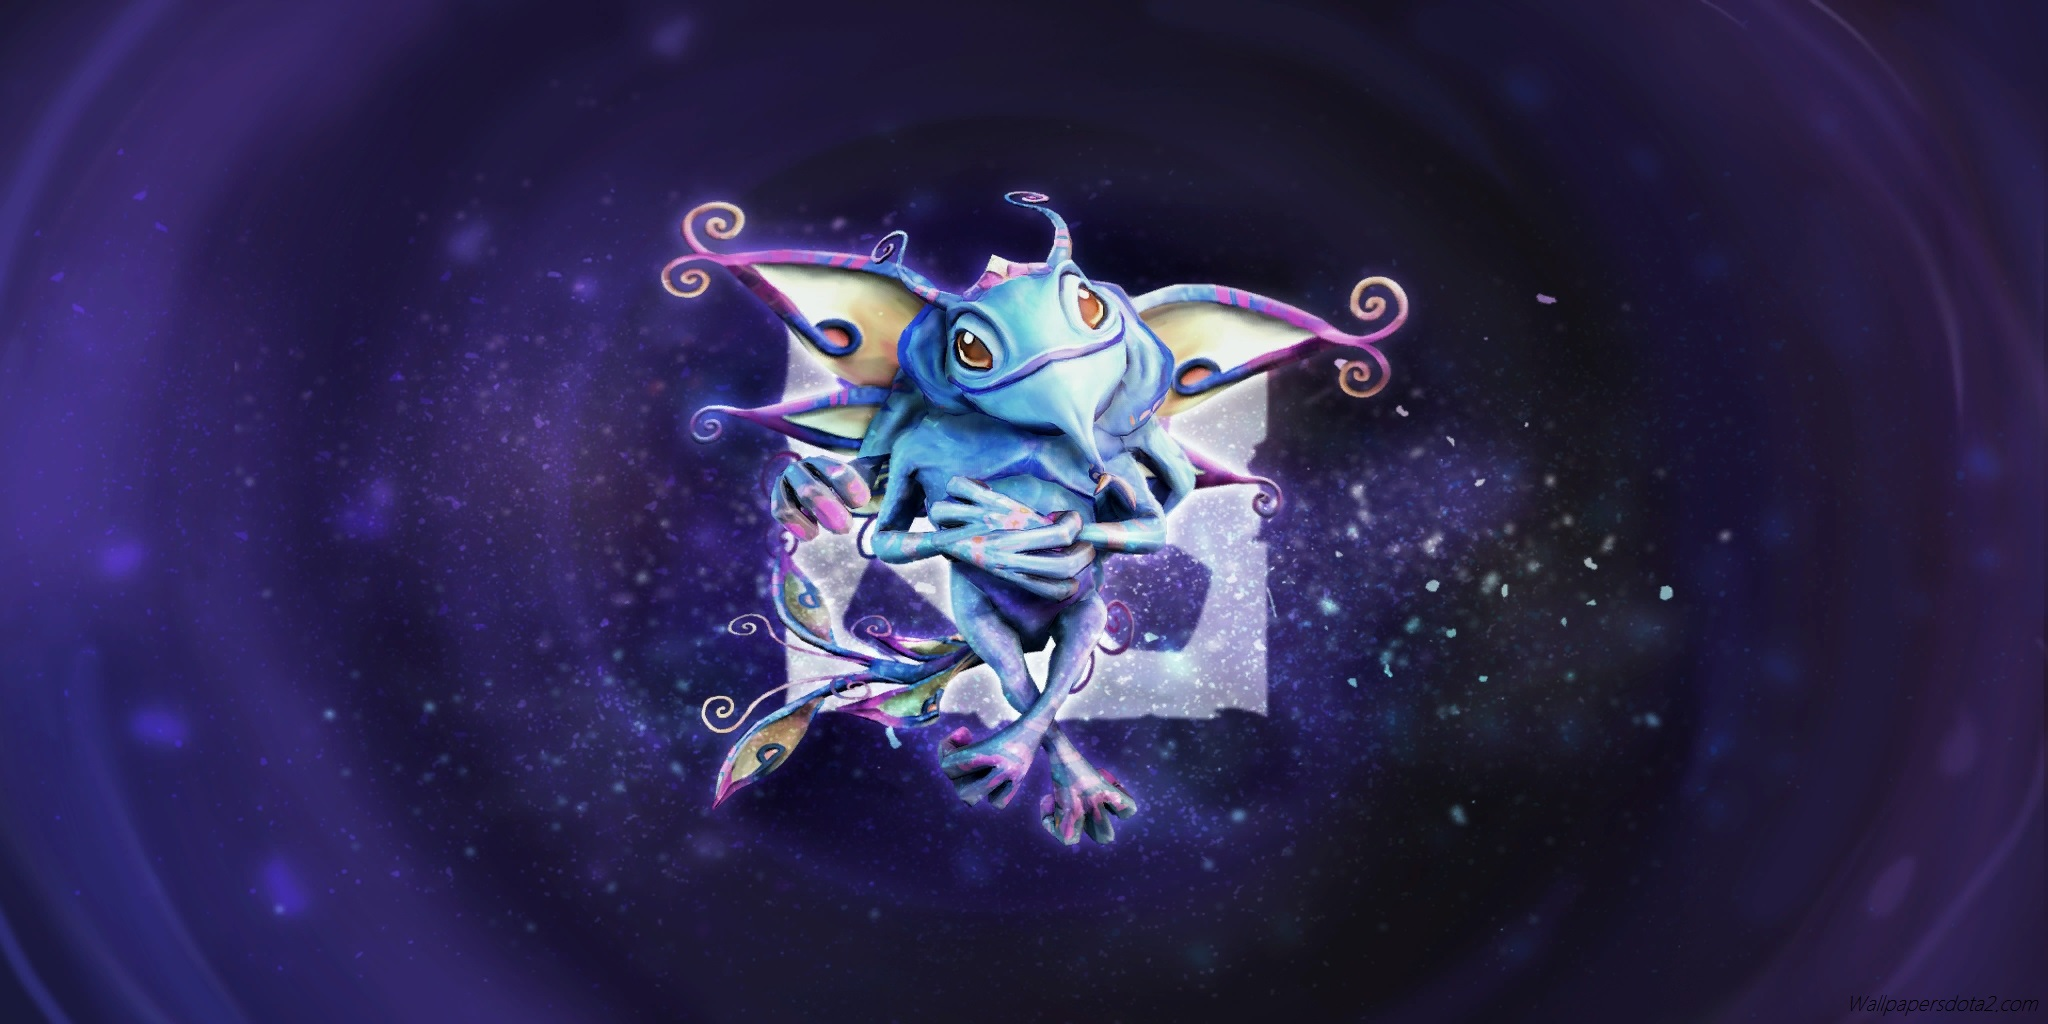 Puck Logo Dota 2 Wraith King computer desktop wallpaper Dota 2